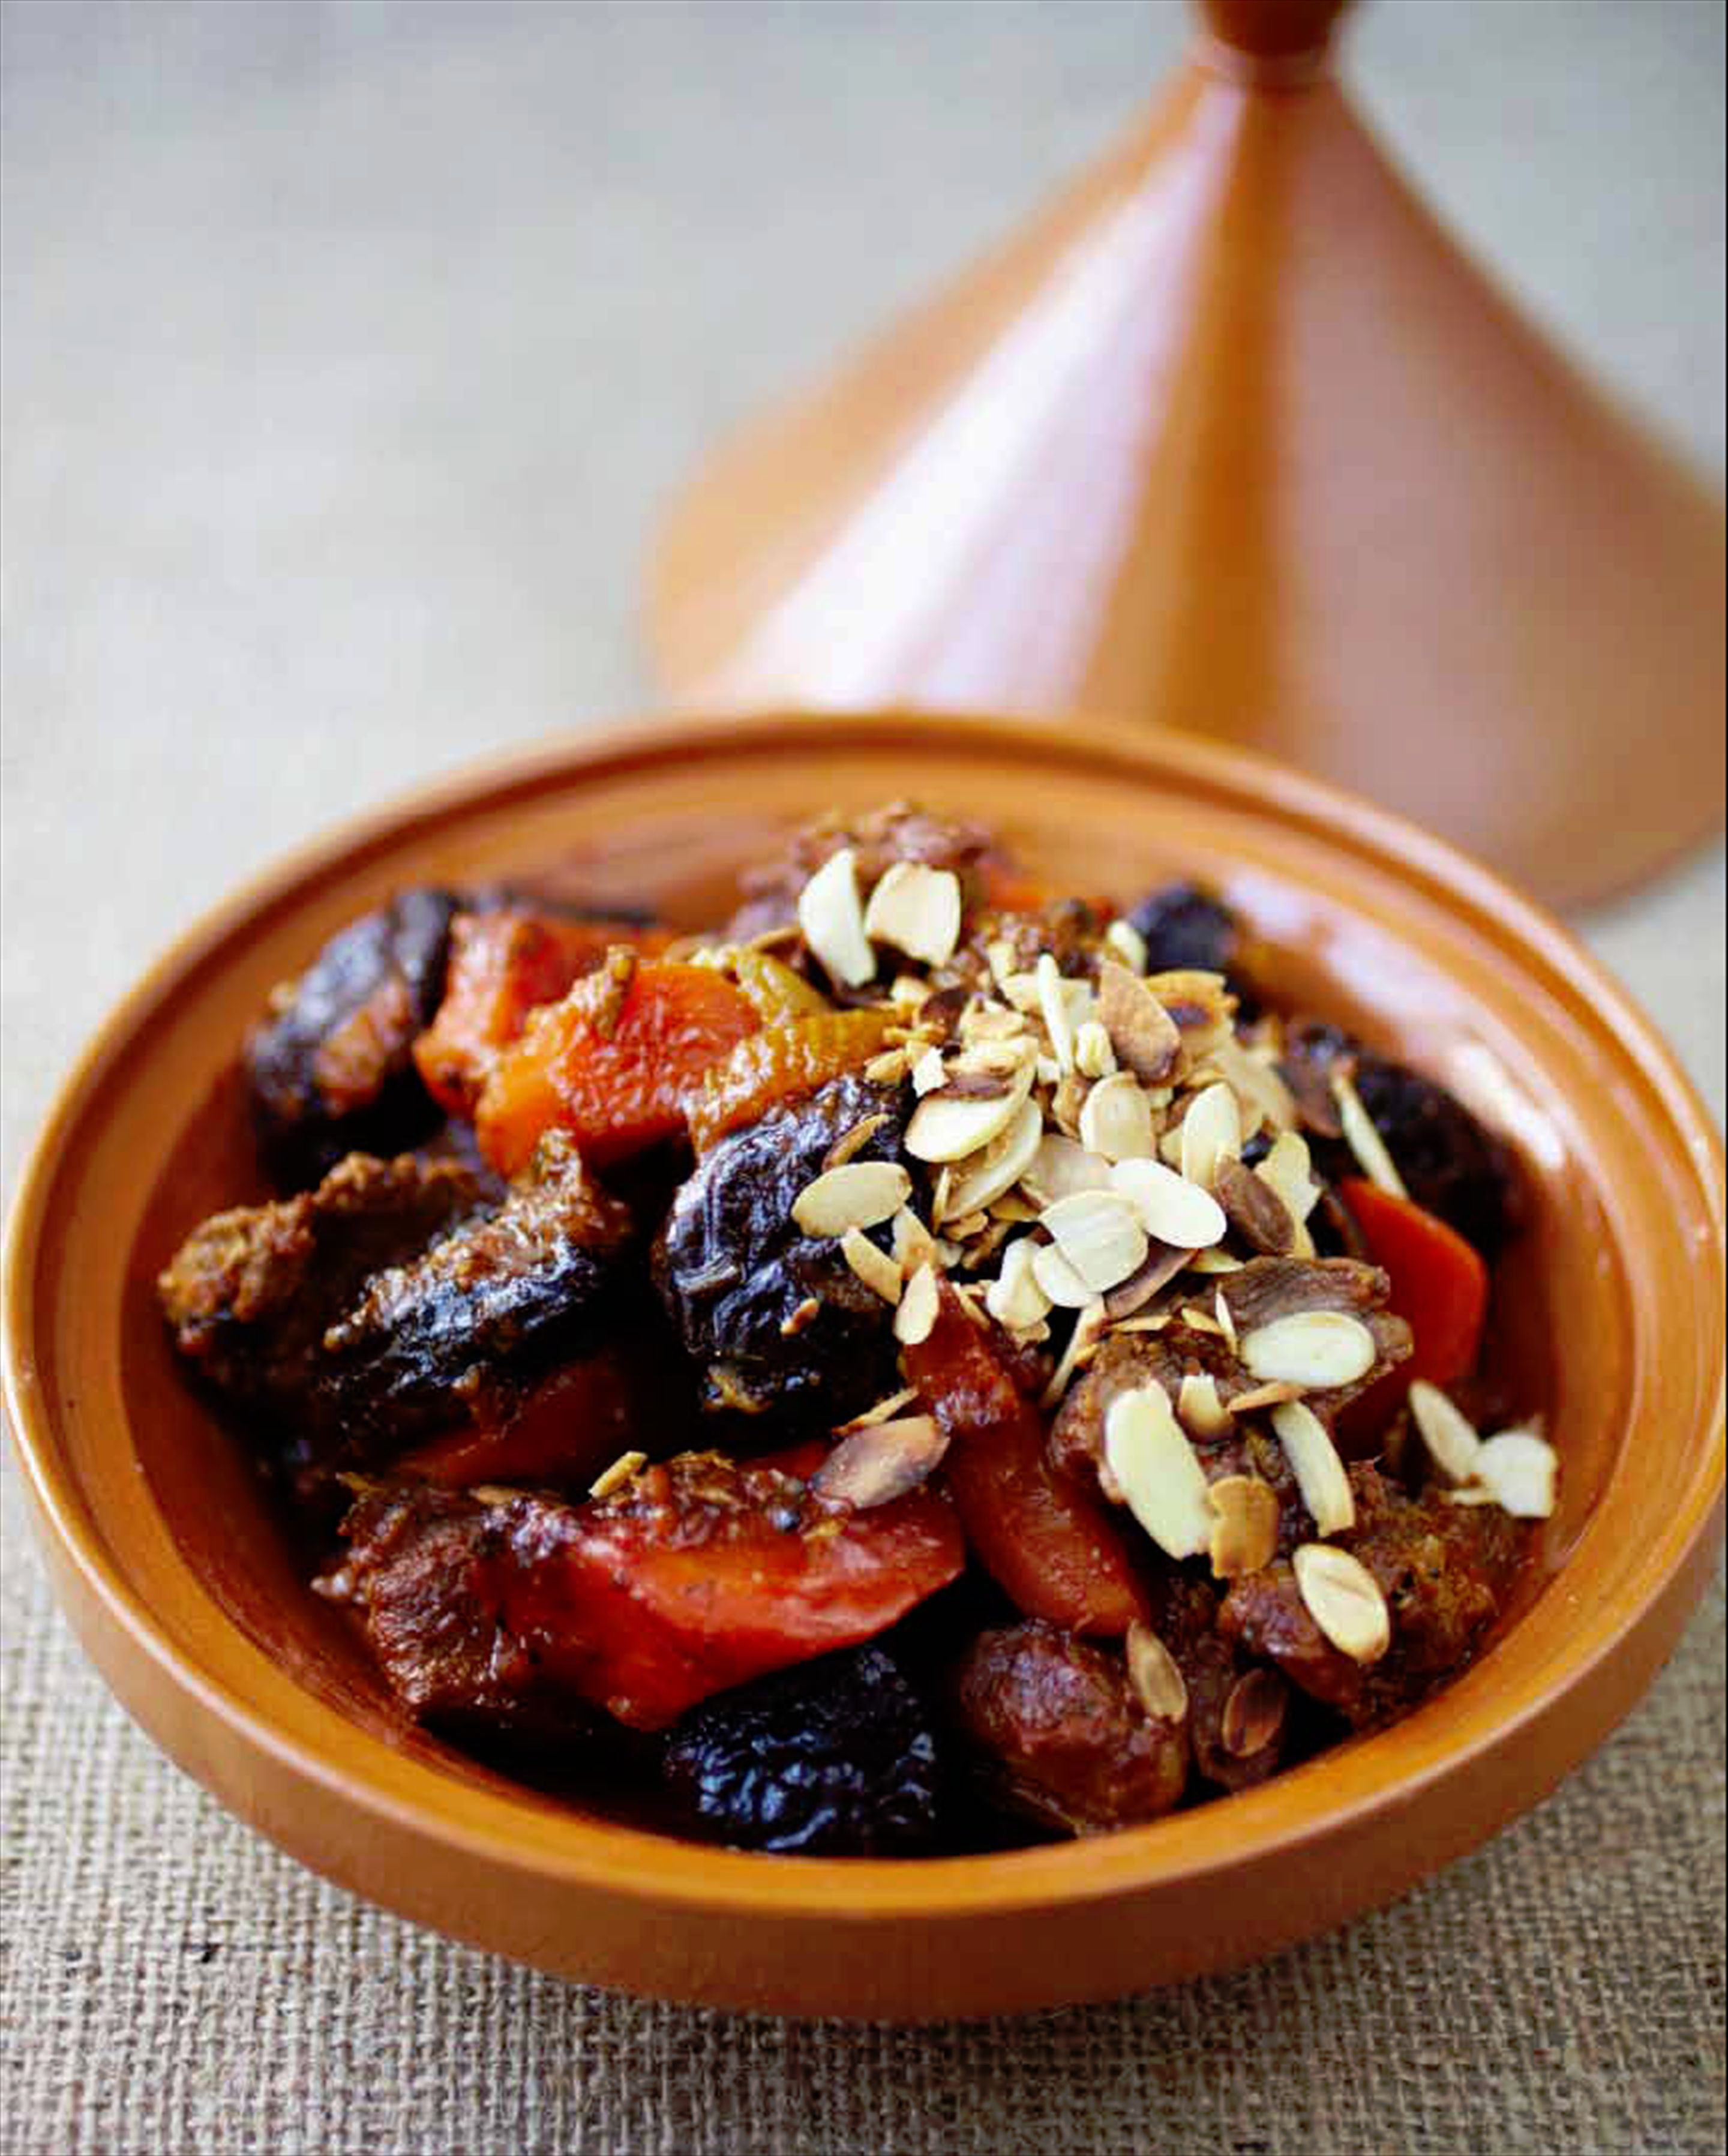 Lamb & prune tagine